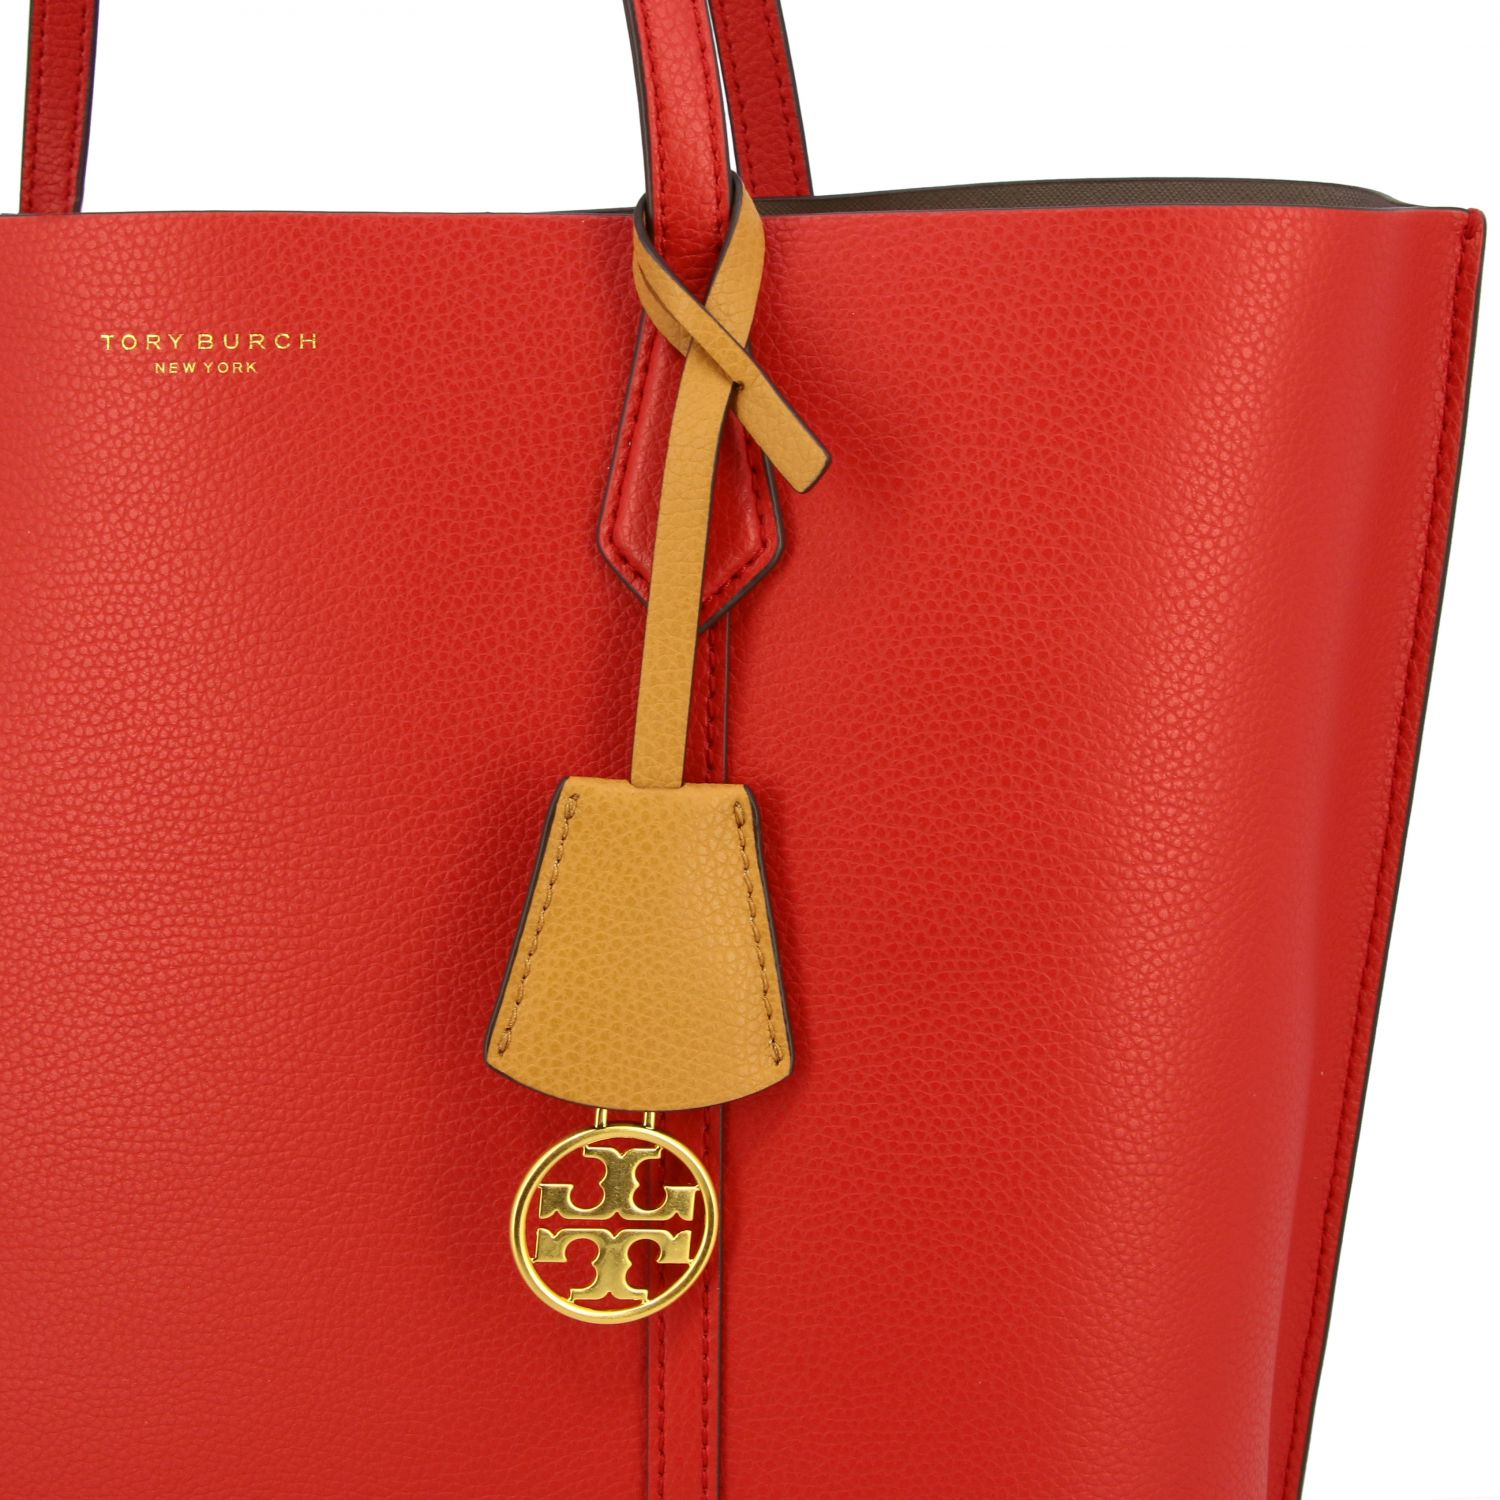 Perry Tory Burch tote bag in textured leather red 4